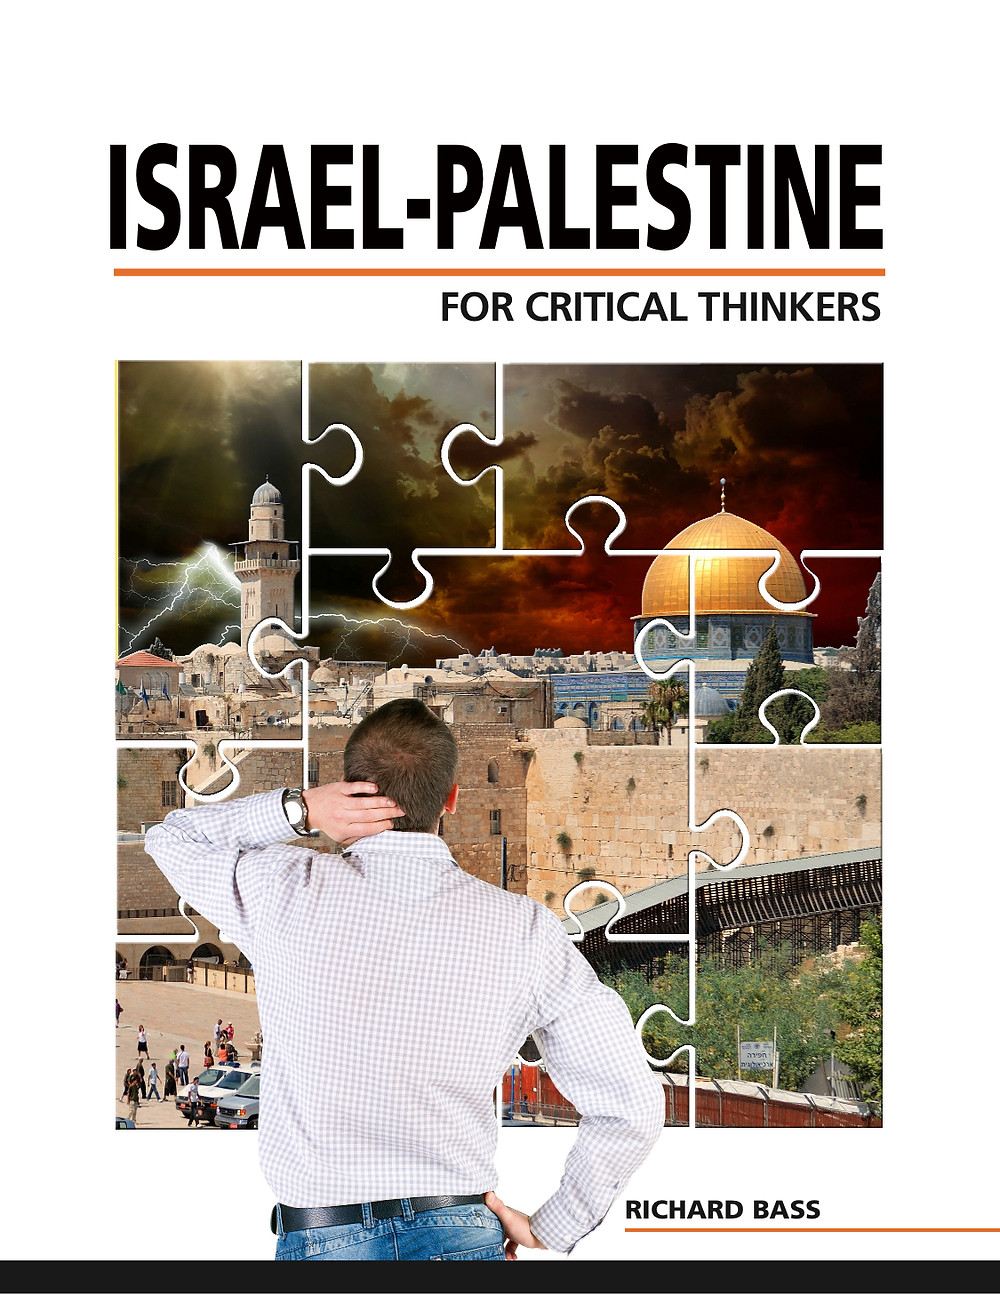 0 Isr-Pal for Ciritical Thinkers Cover Jan 13.jpg